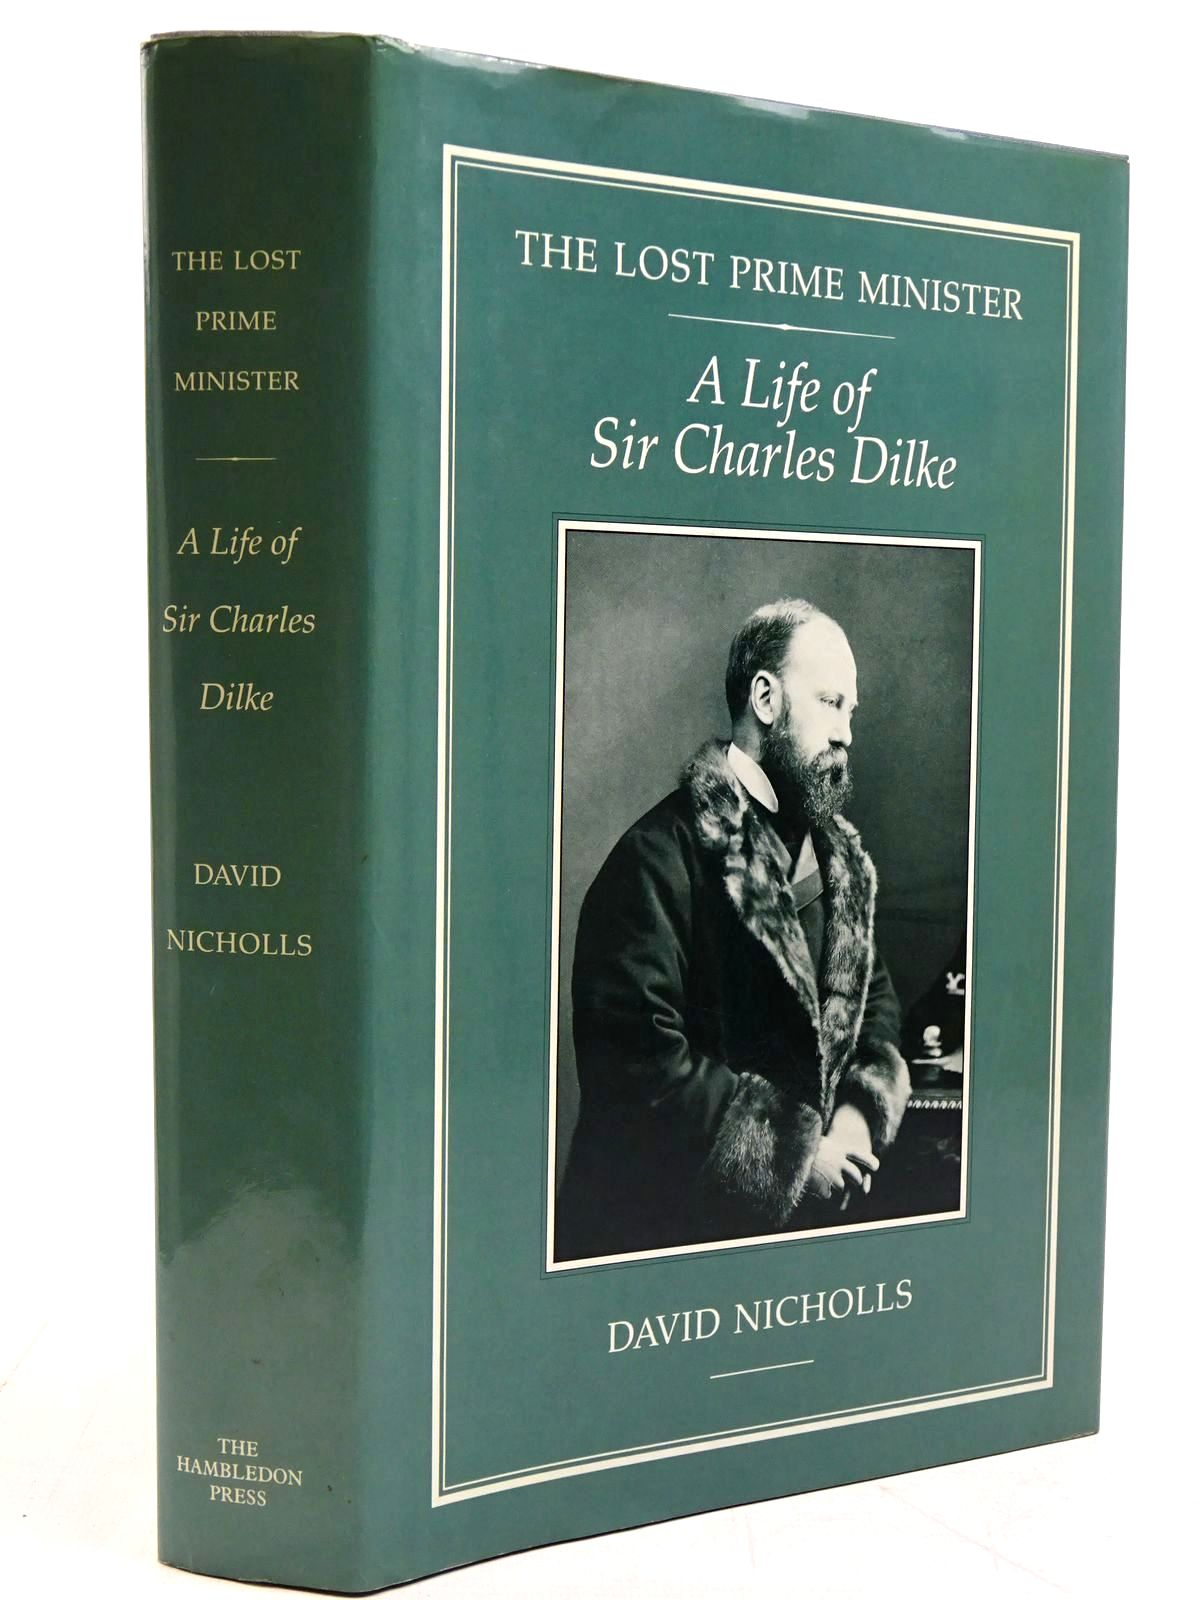 Photo of THE LOST PRIME MINISTER A LIFE OF SIR CHARLES DILKE written by Nicholls, David published by The Hambledon Press (STOCK CODE: 2130896)  for sale by Stella & Rose's Books